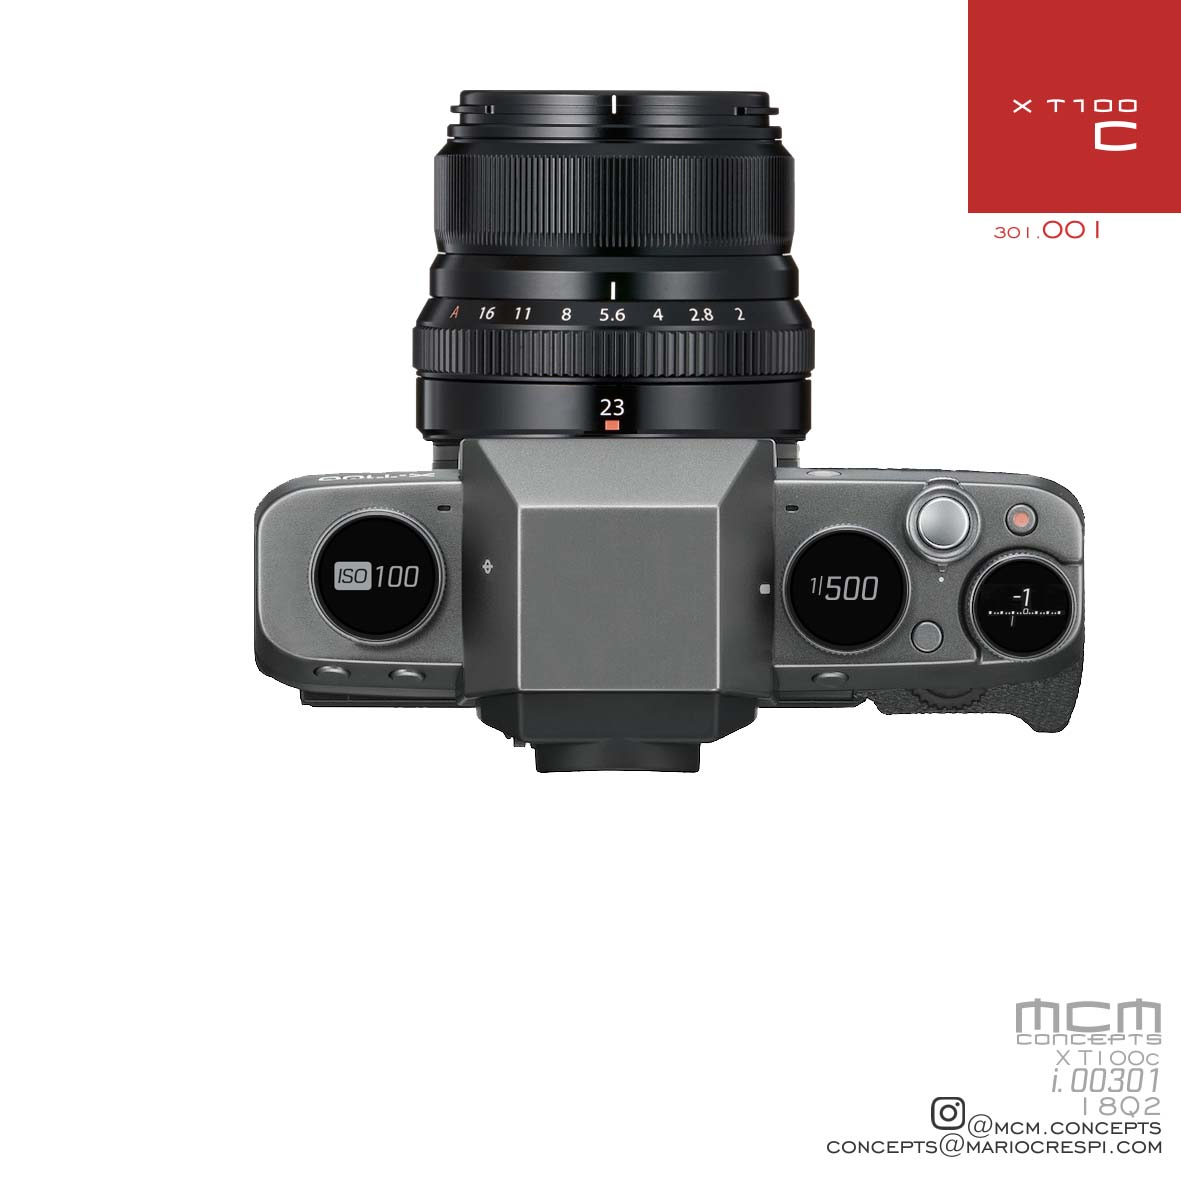 Fuji Addict Page 56 Of 301 Fujifilm X T100 Body Xf35mm F2 Gold Kamera Mirrorless Mario Crespi Left Some His Concept Photos In The Comments Section Our Last Post Again And While Digital Dials Are Very Nice Would You Spend A Few